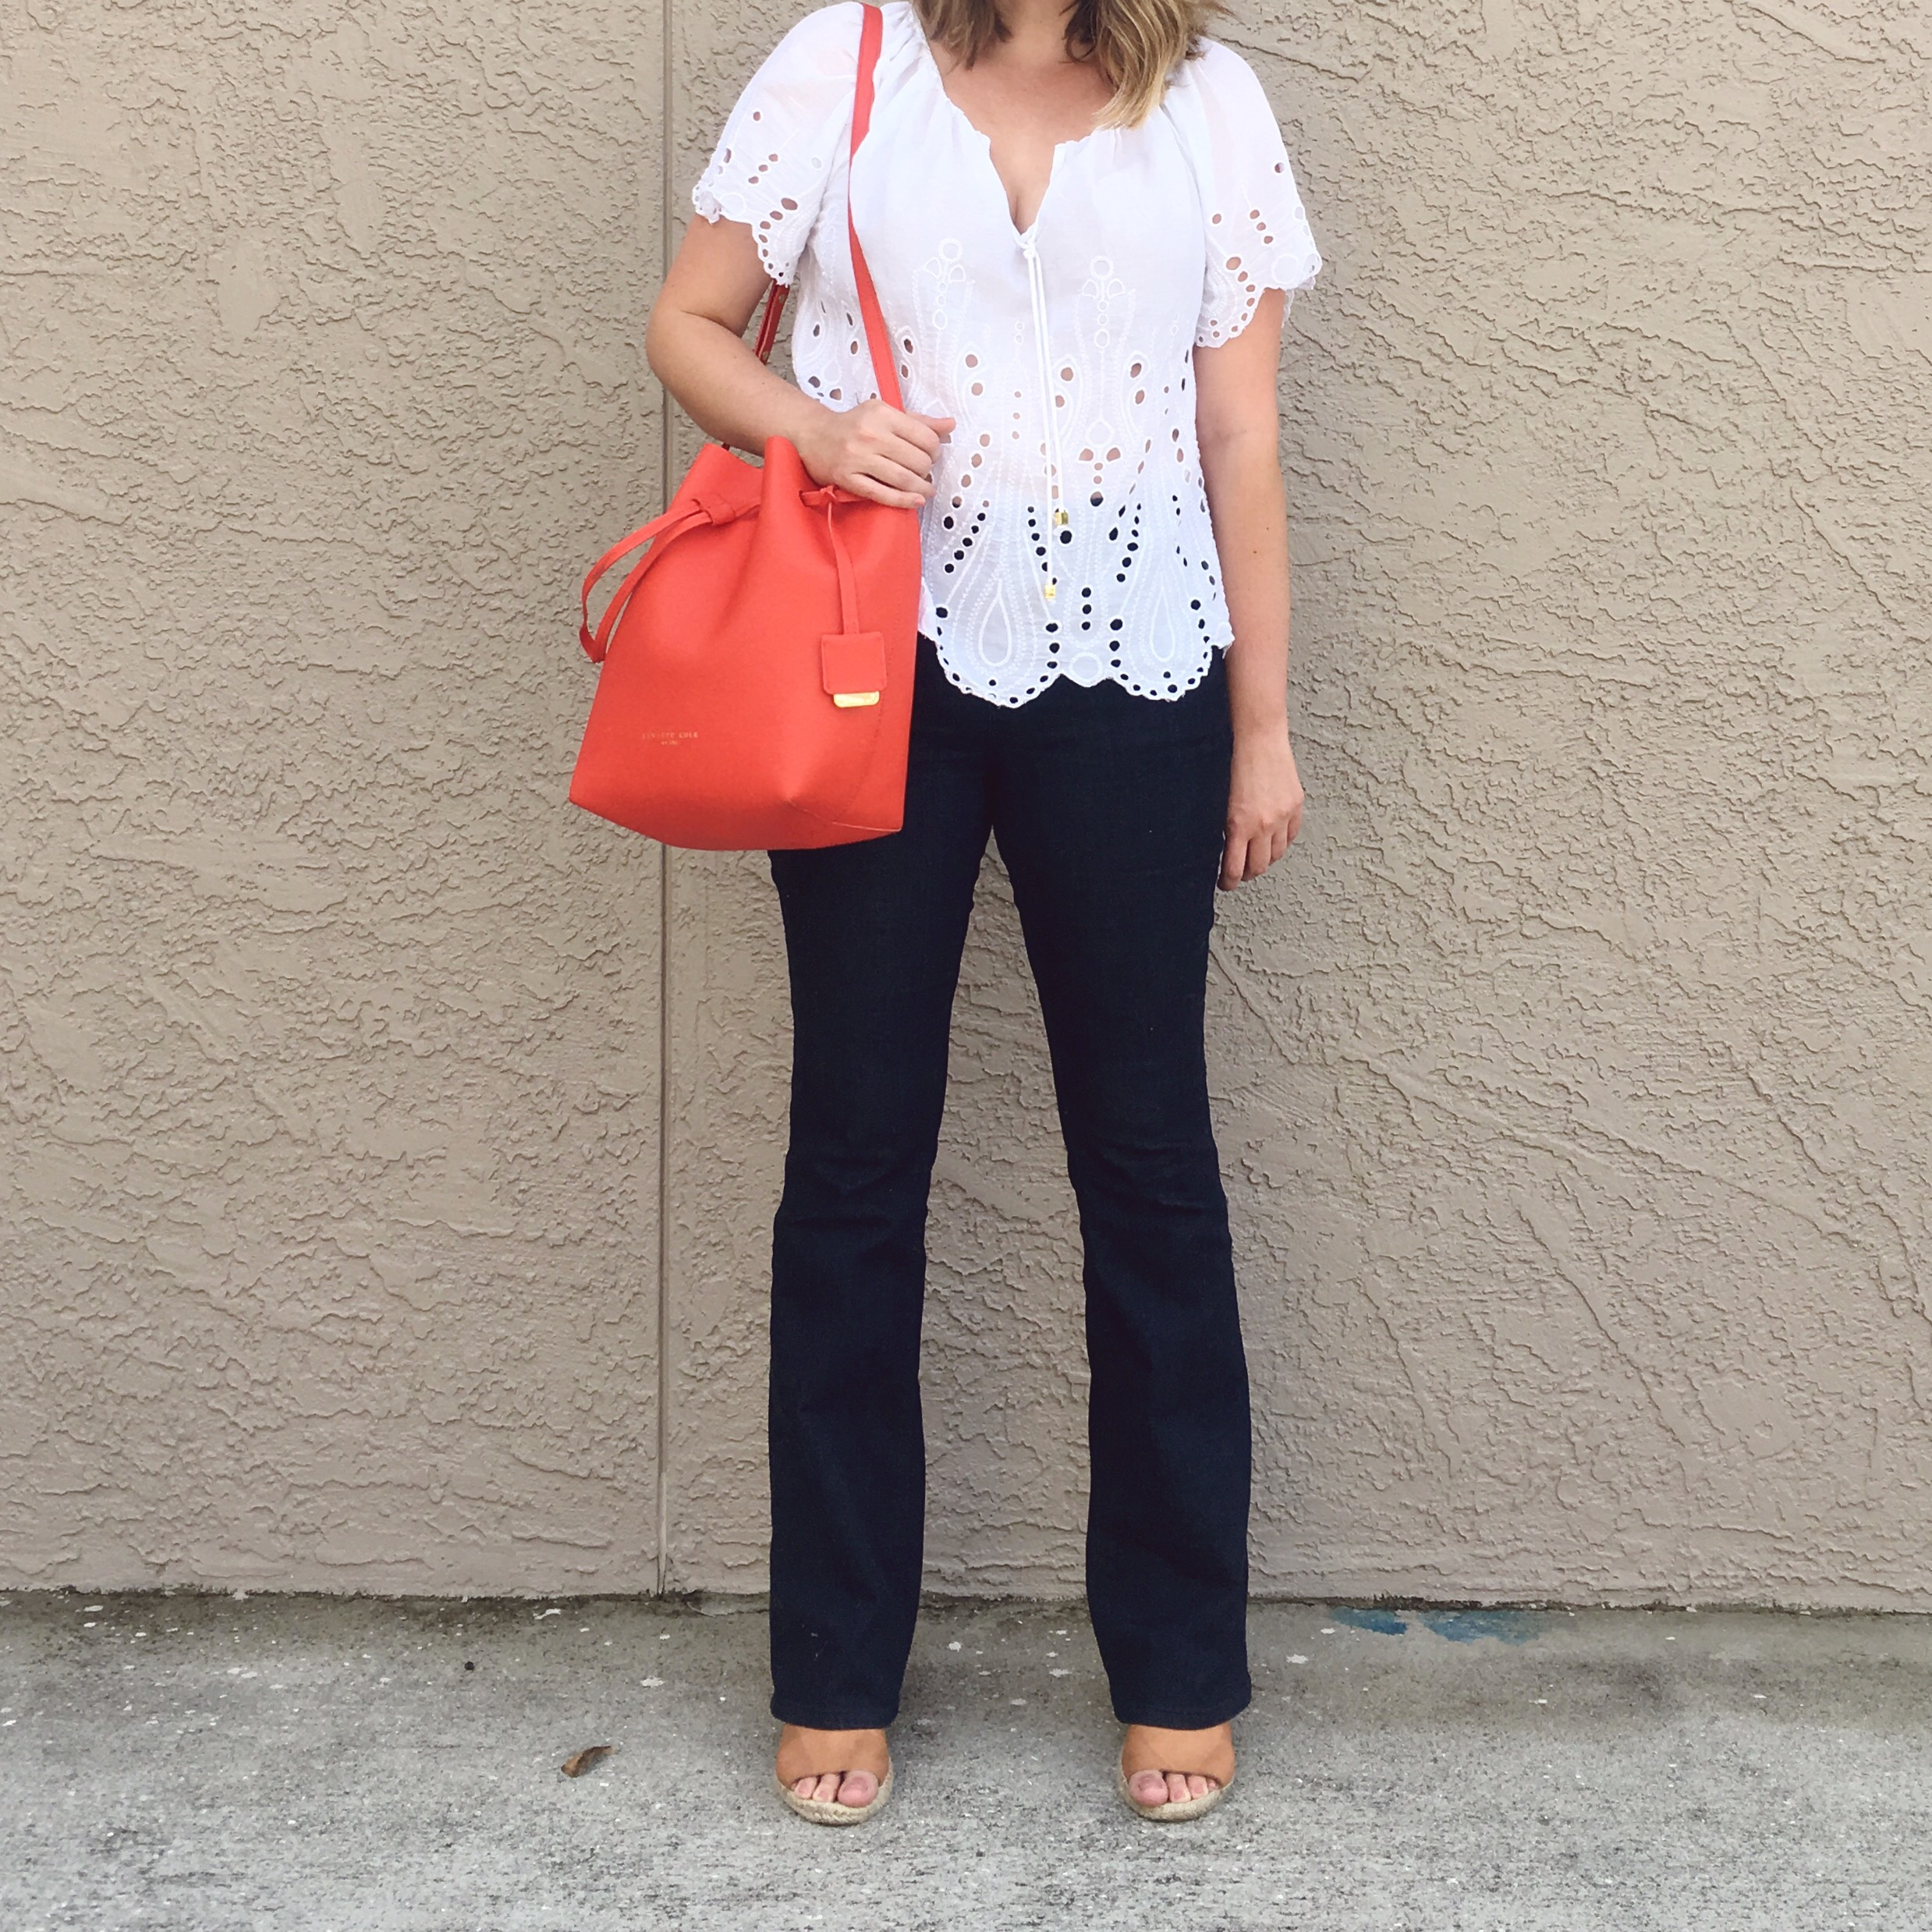 OOTD Loft dark flare jeans with Michael Kors eyelet top and Kenneth Cole leather bucket bag